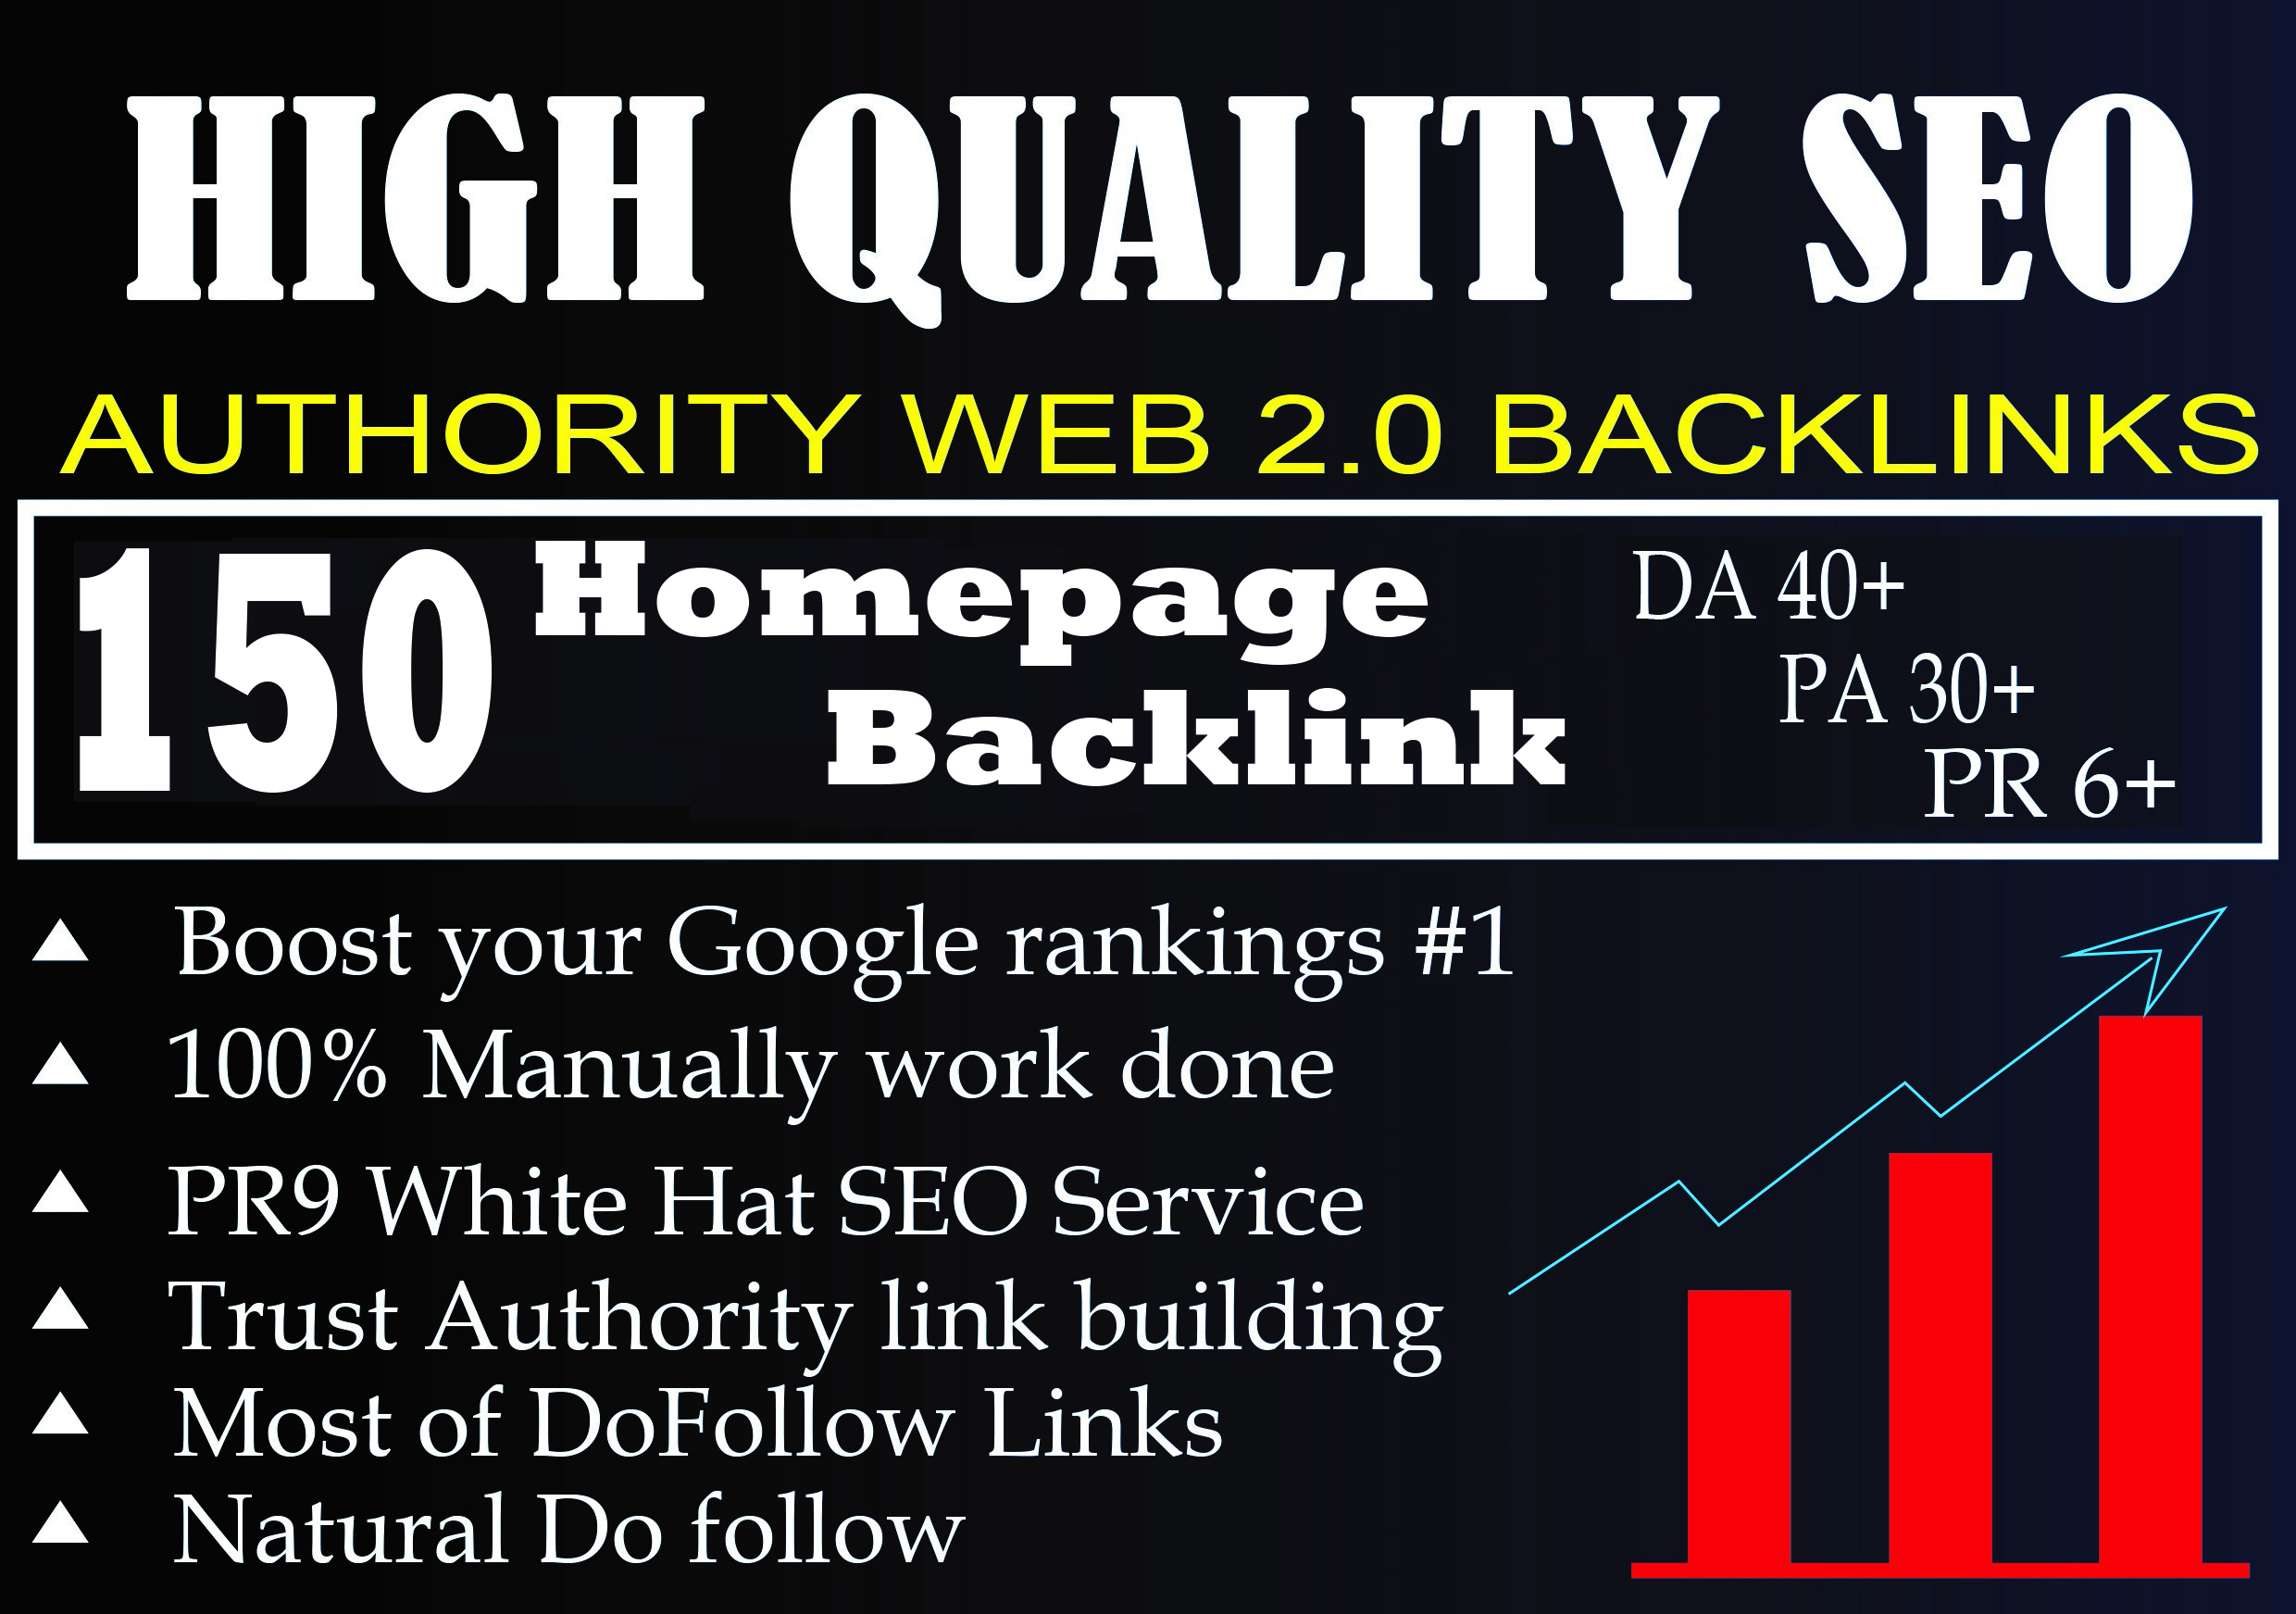 DA 40+ PA 30+ PR 6+ Web2.0 150 homepage Backlink in 100 dofollow in unique site